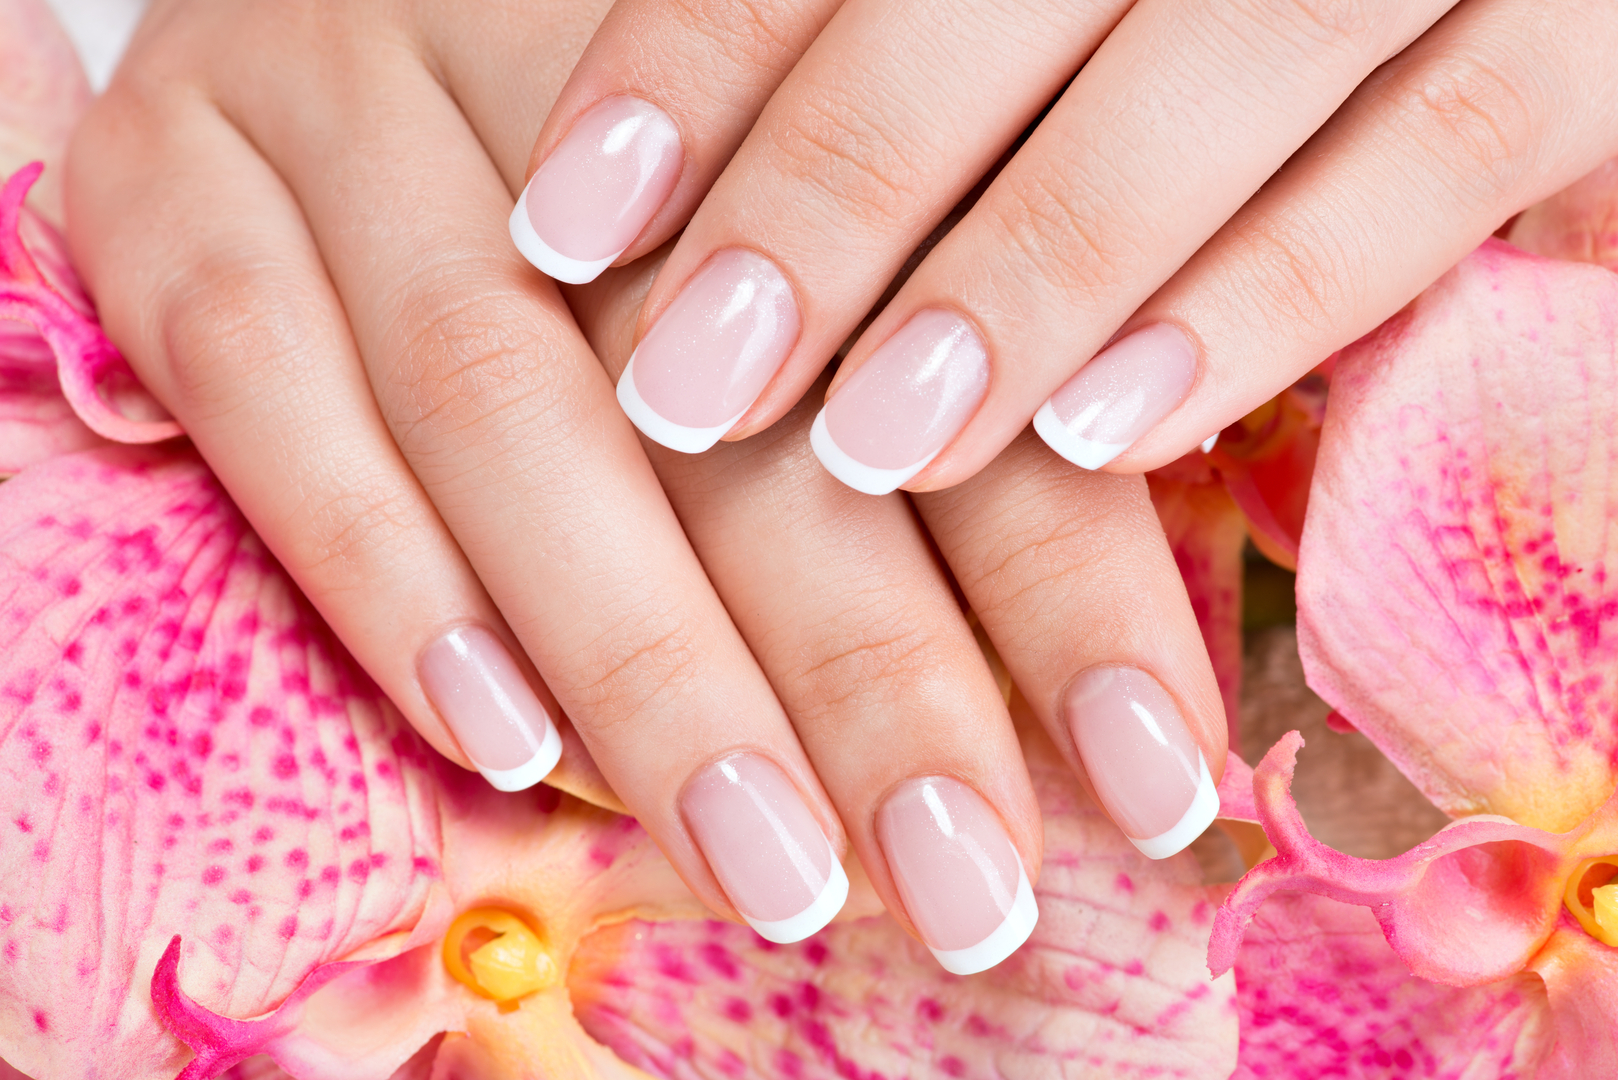 Nail Salon | Nail Salon In Carolina Beach 28428| Fashion Nails ...